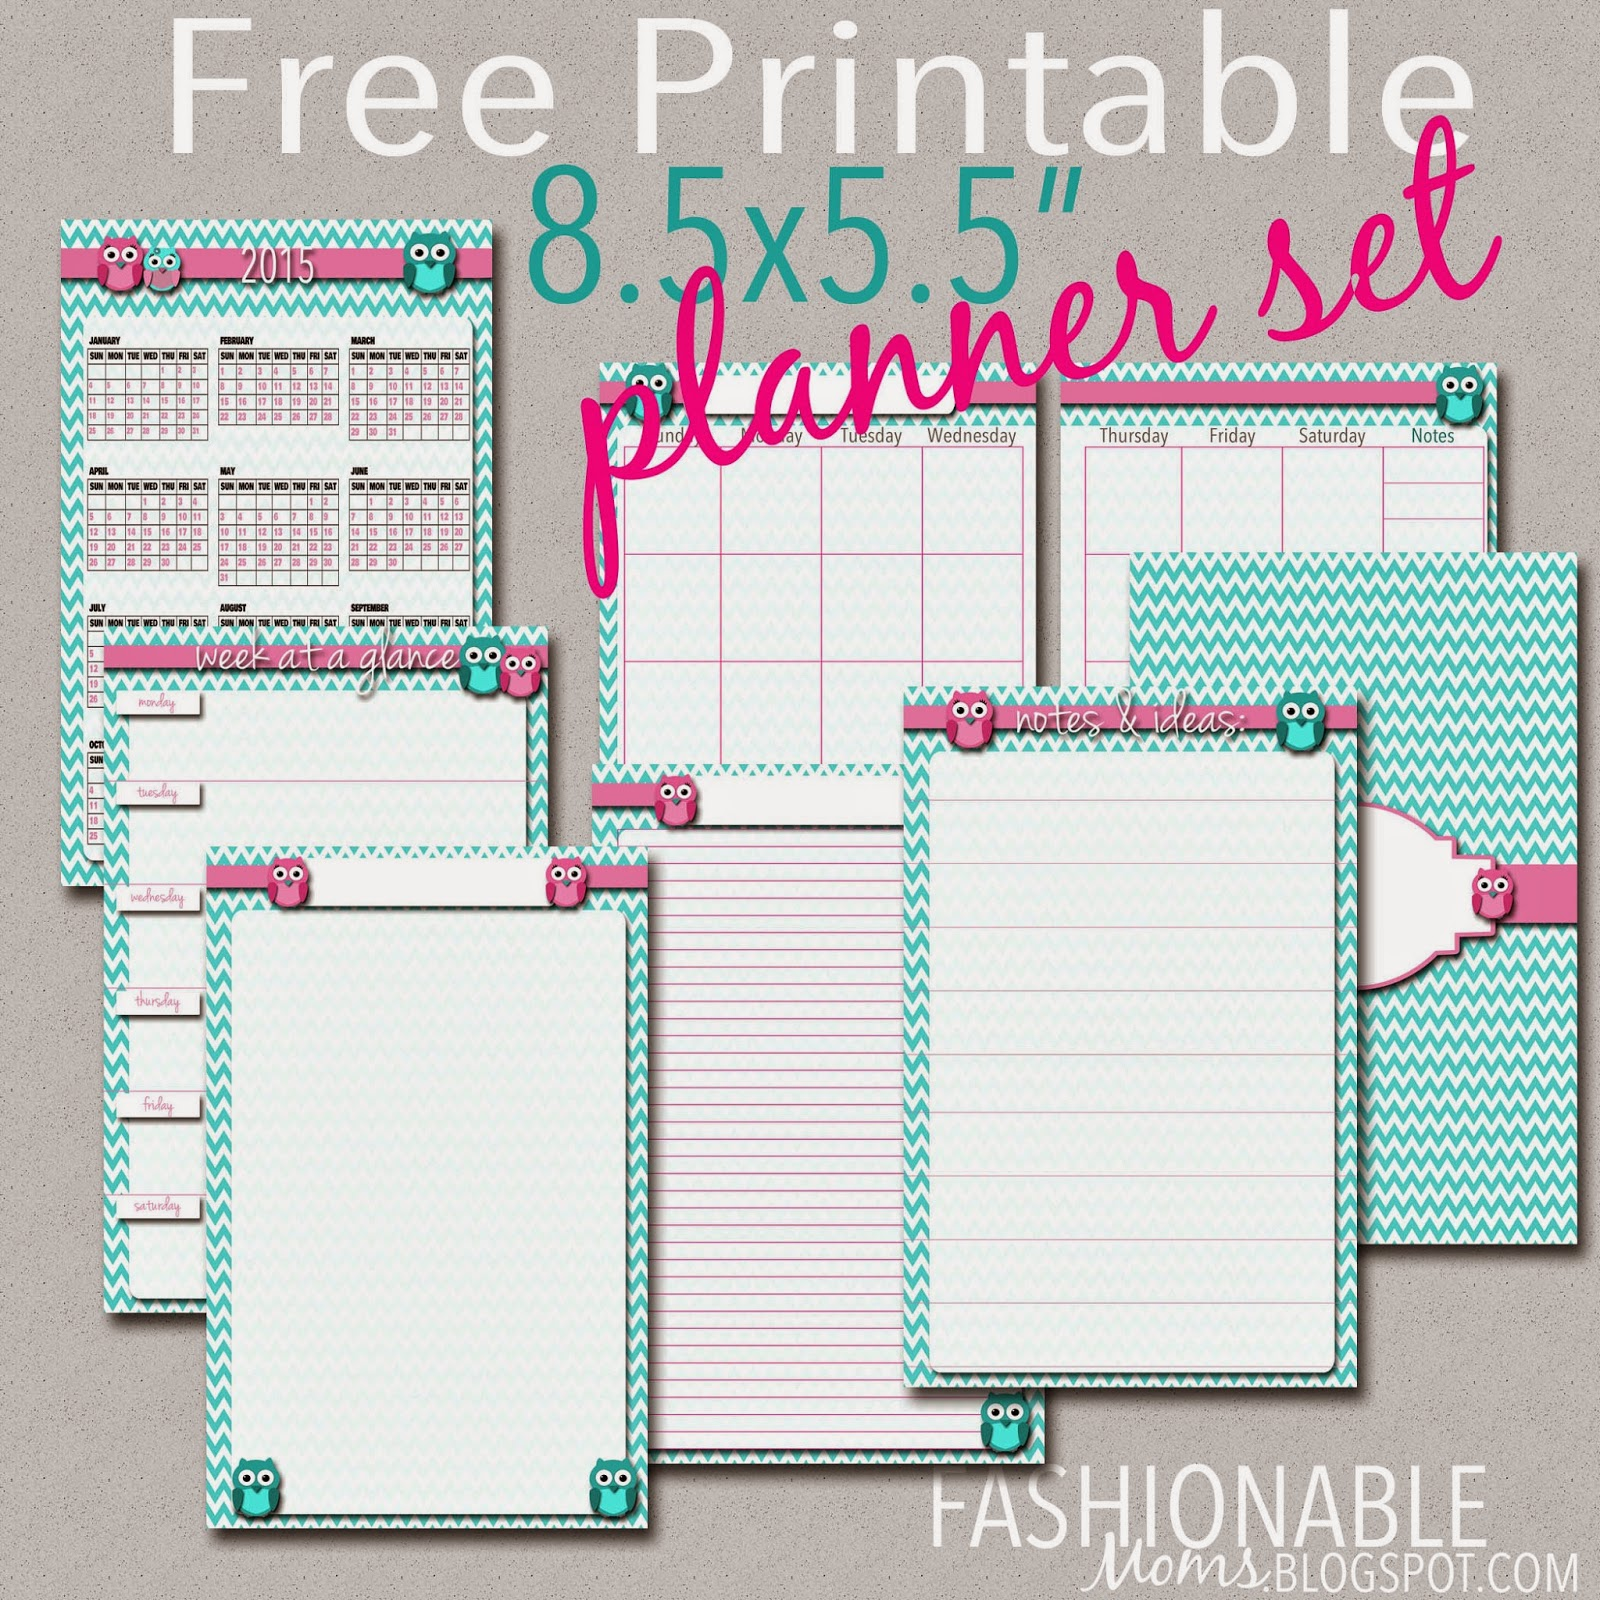 My Fashionable Designs Free Printable Half Page Owl Planner Set